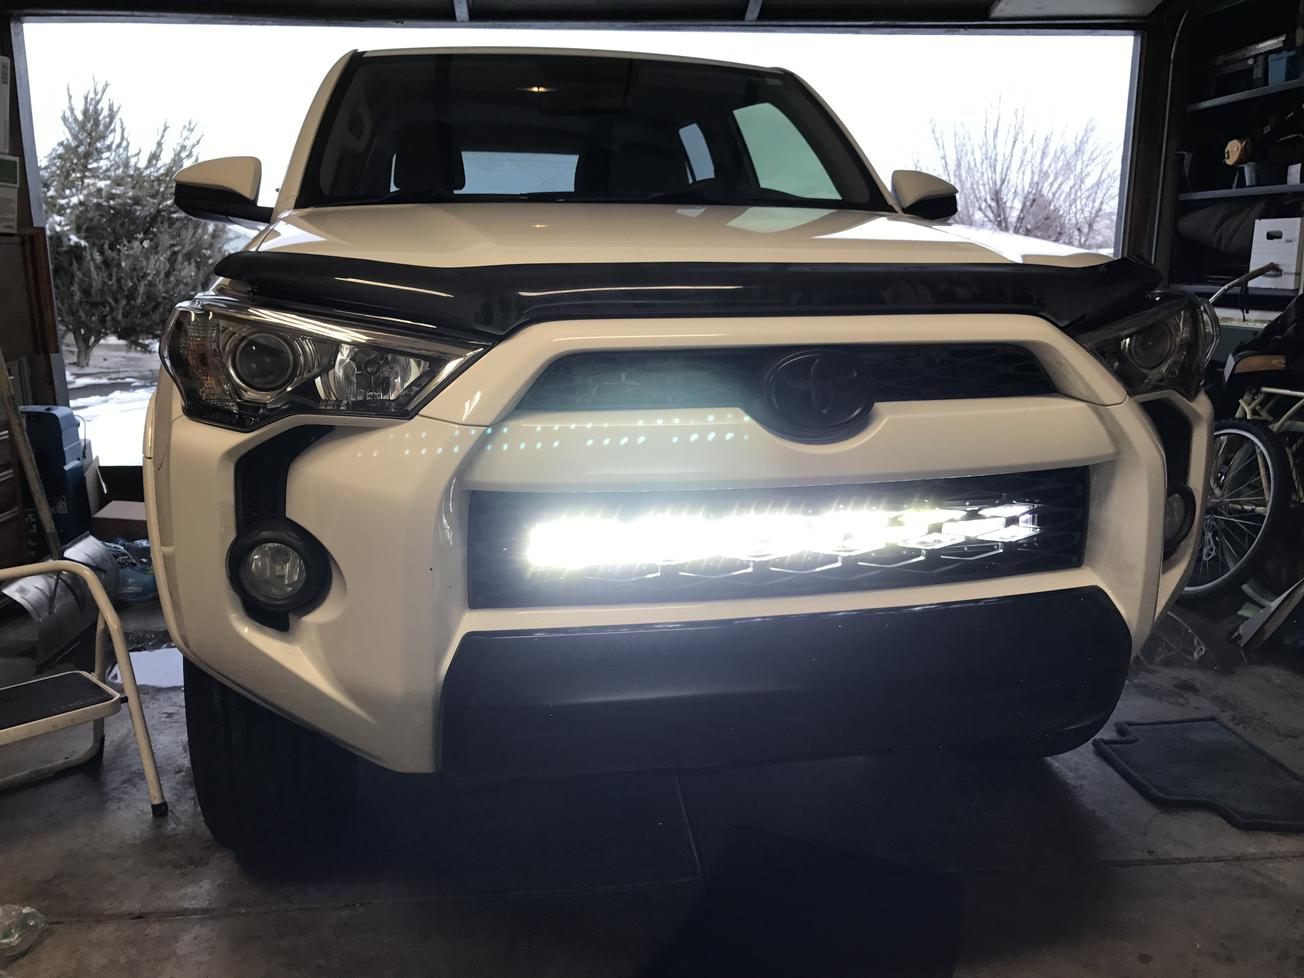 32 inch light bar flush with the grill toyota 4runner forum attached img2530g 1238 kb aloadofball Choice Image